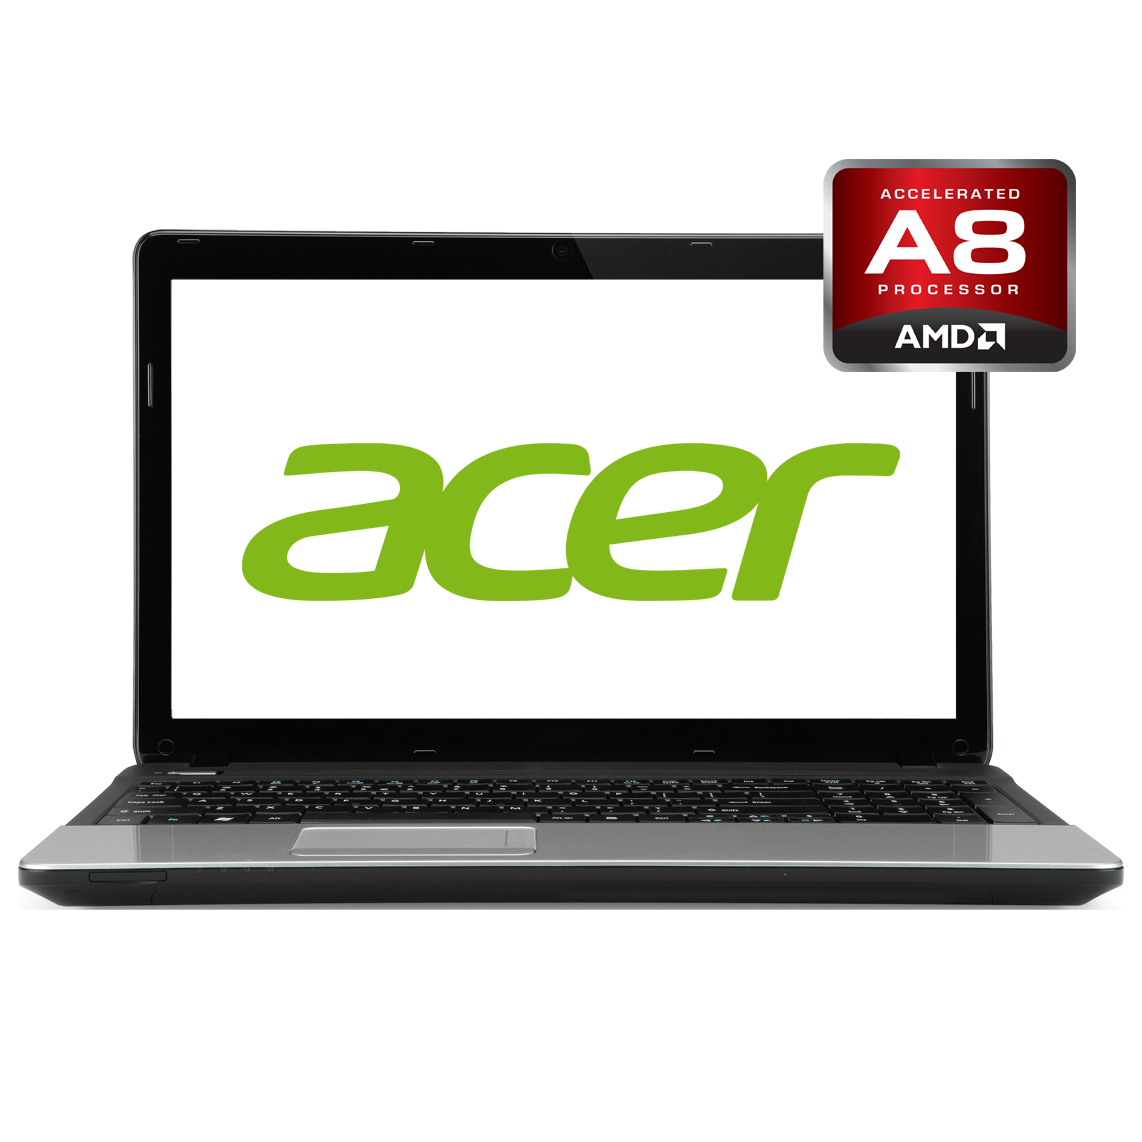 Acer - 17.3 inch AMD A8